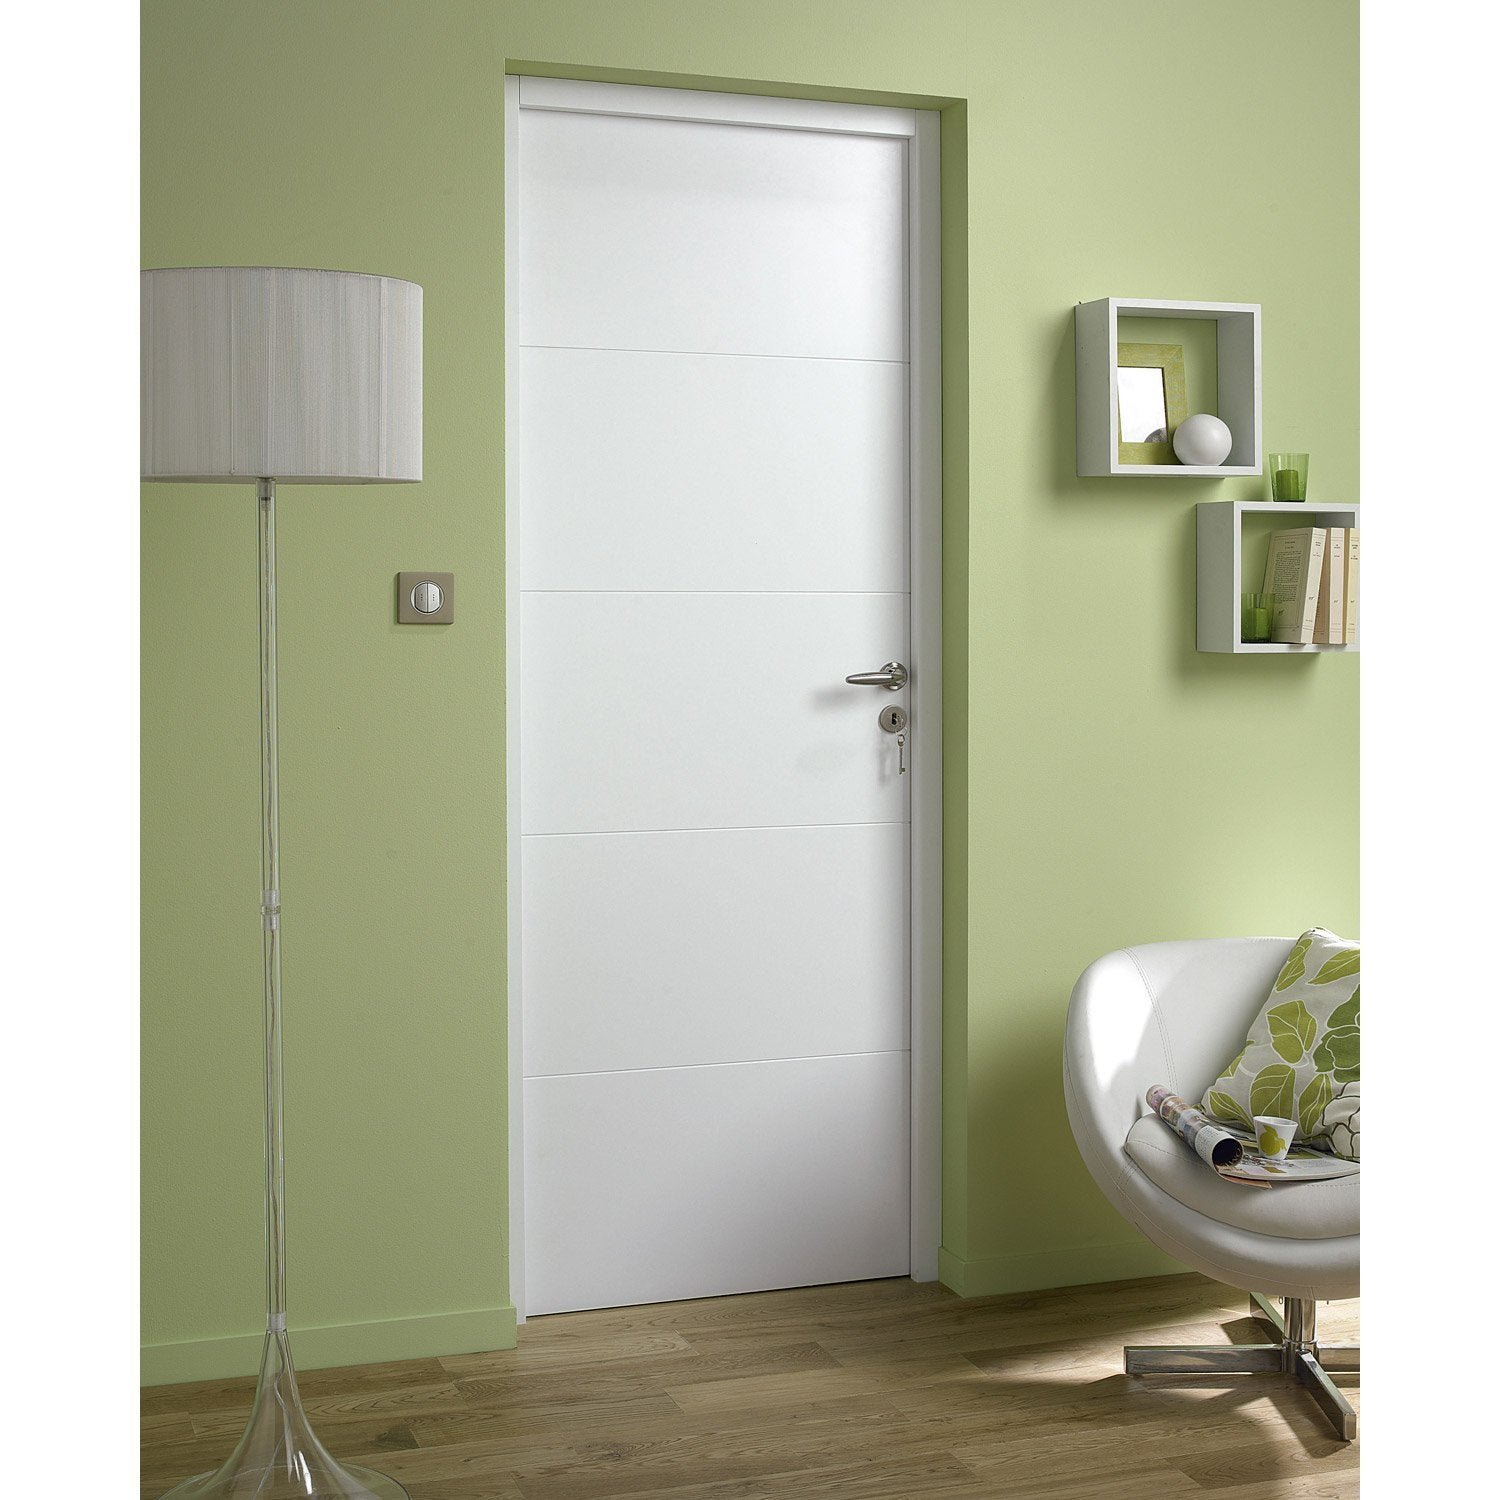 Bloc porte laqu e blanc alaska 2 artens x cm for Porte interieur point p